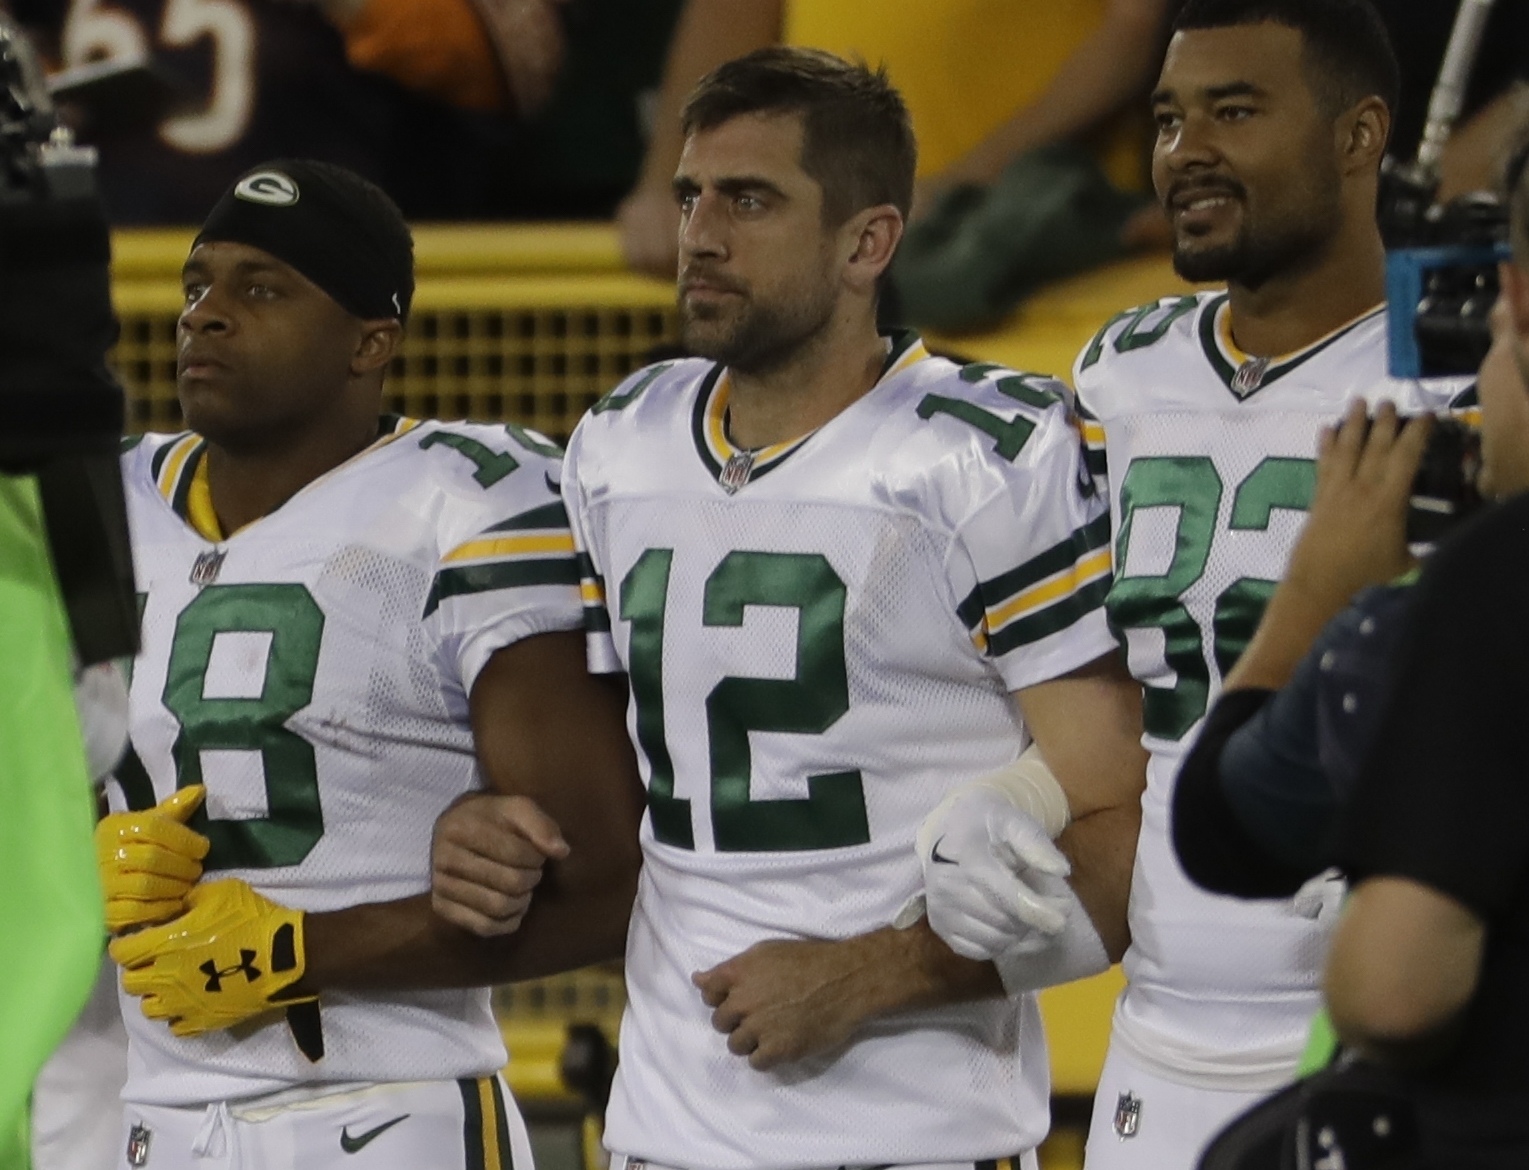 Green Bay Packers' Aaron Rodgers links arms with Richard Rodgers and Randall Cobb during the national anthem before a game against the Chicago Bears Thursday, Sept. 28, 2017, in Green Bay. (AP Photo/Morry Gash)